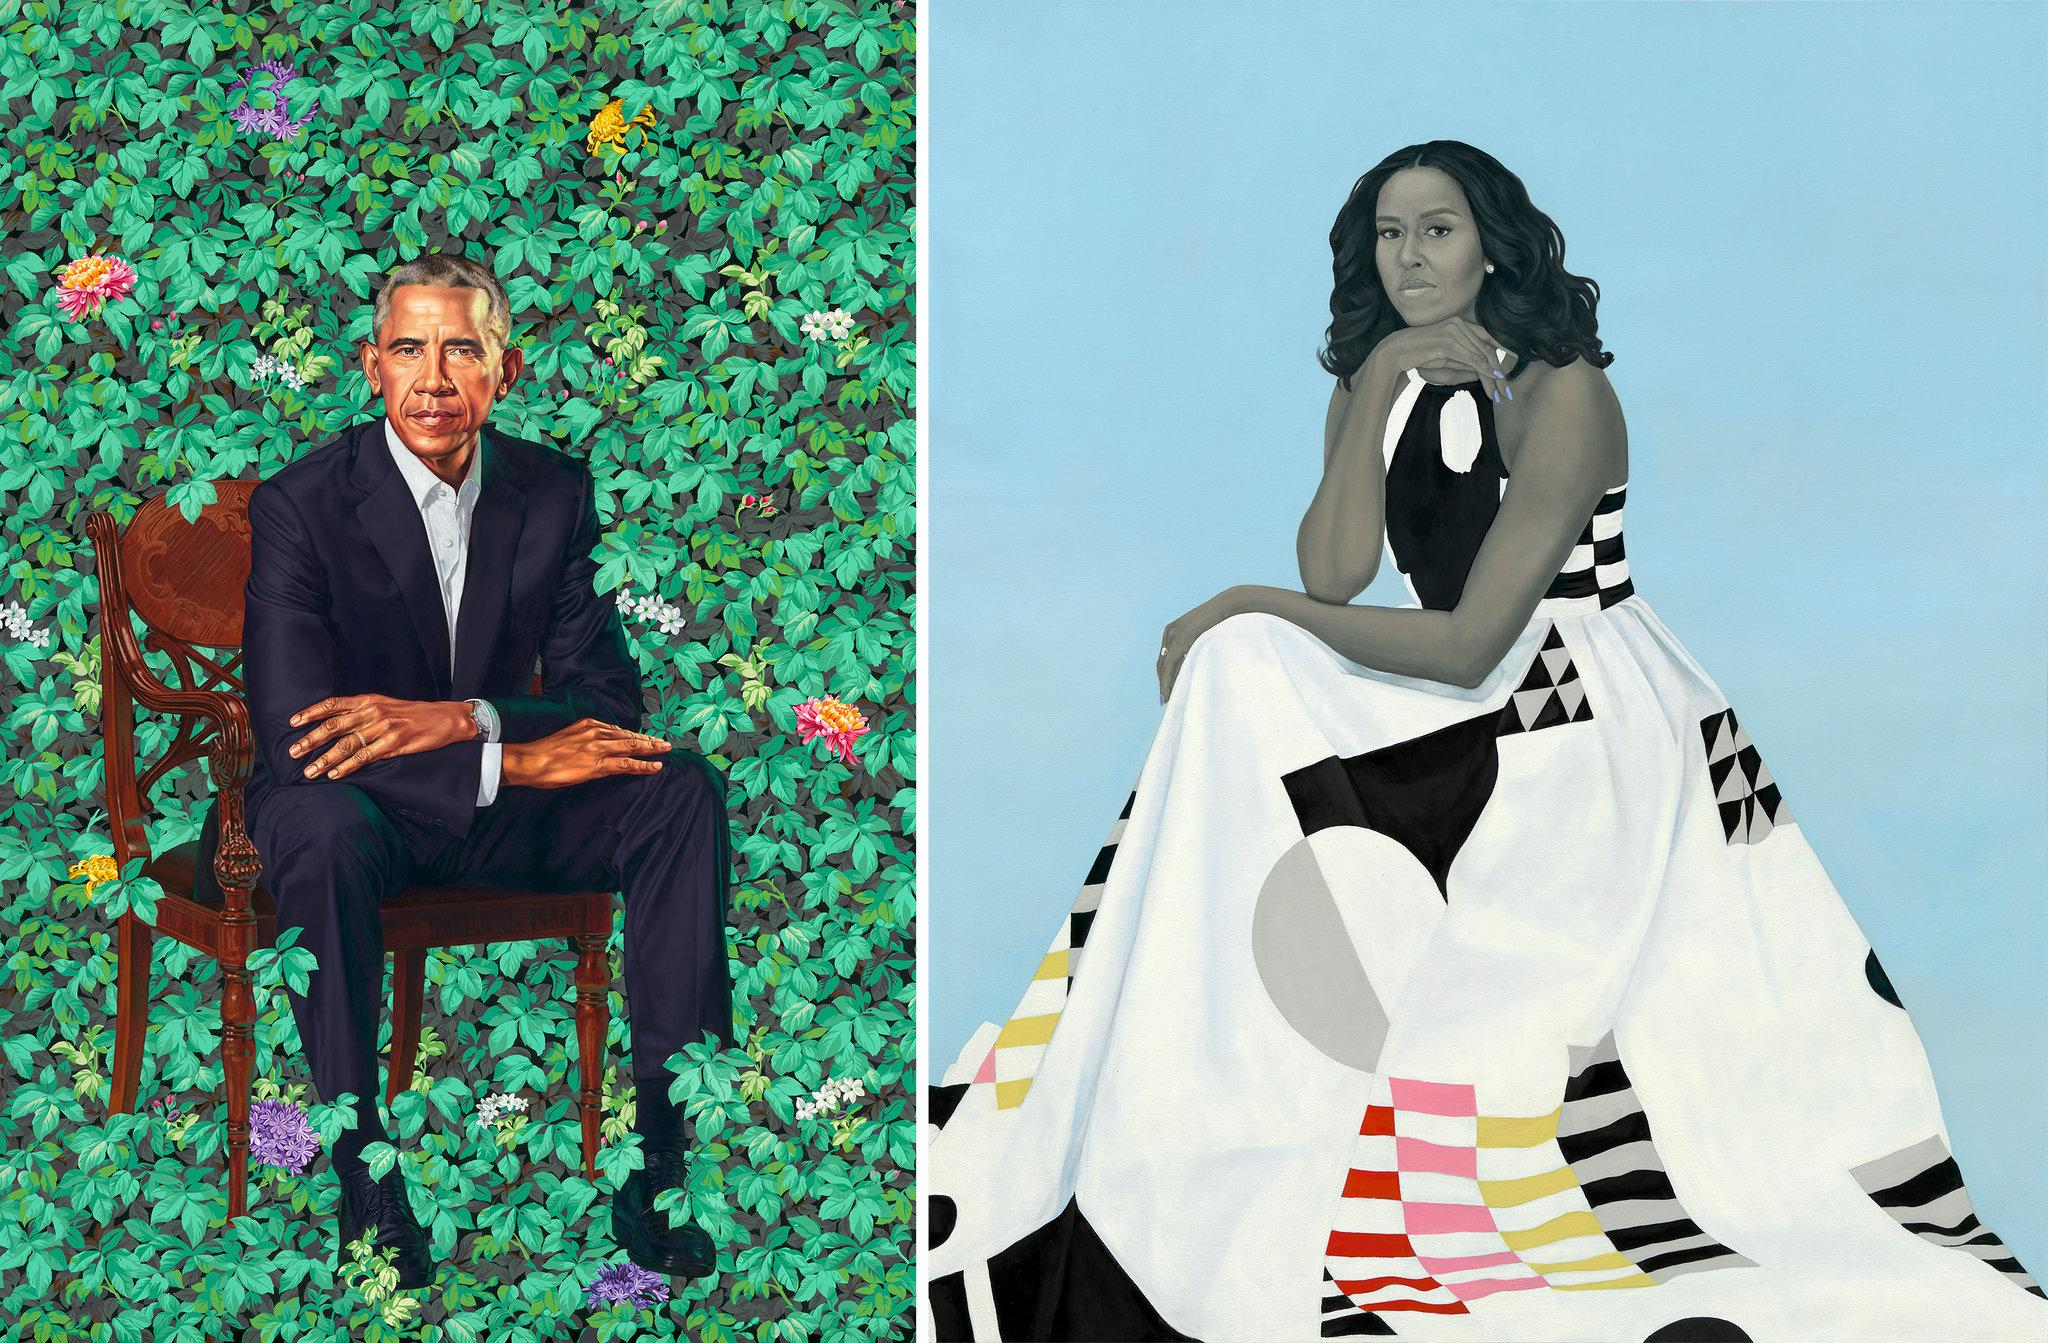 kehinde-wiley-amy-shepard-antidote